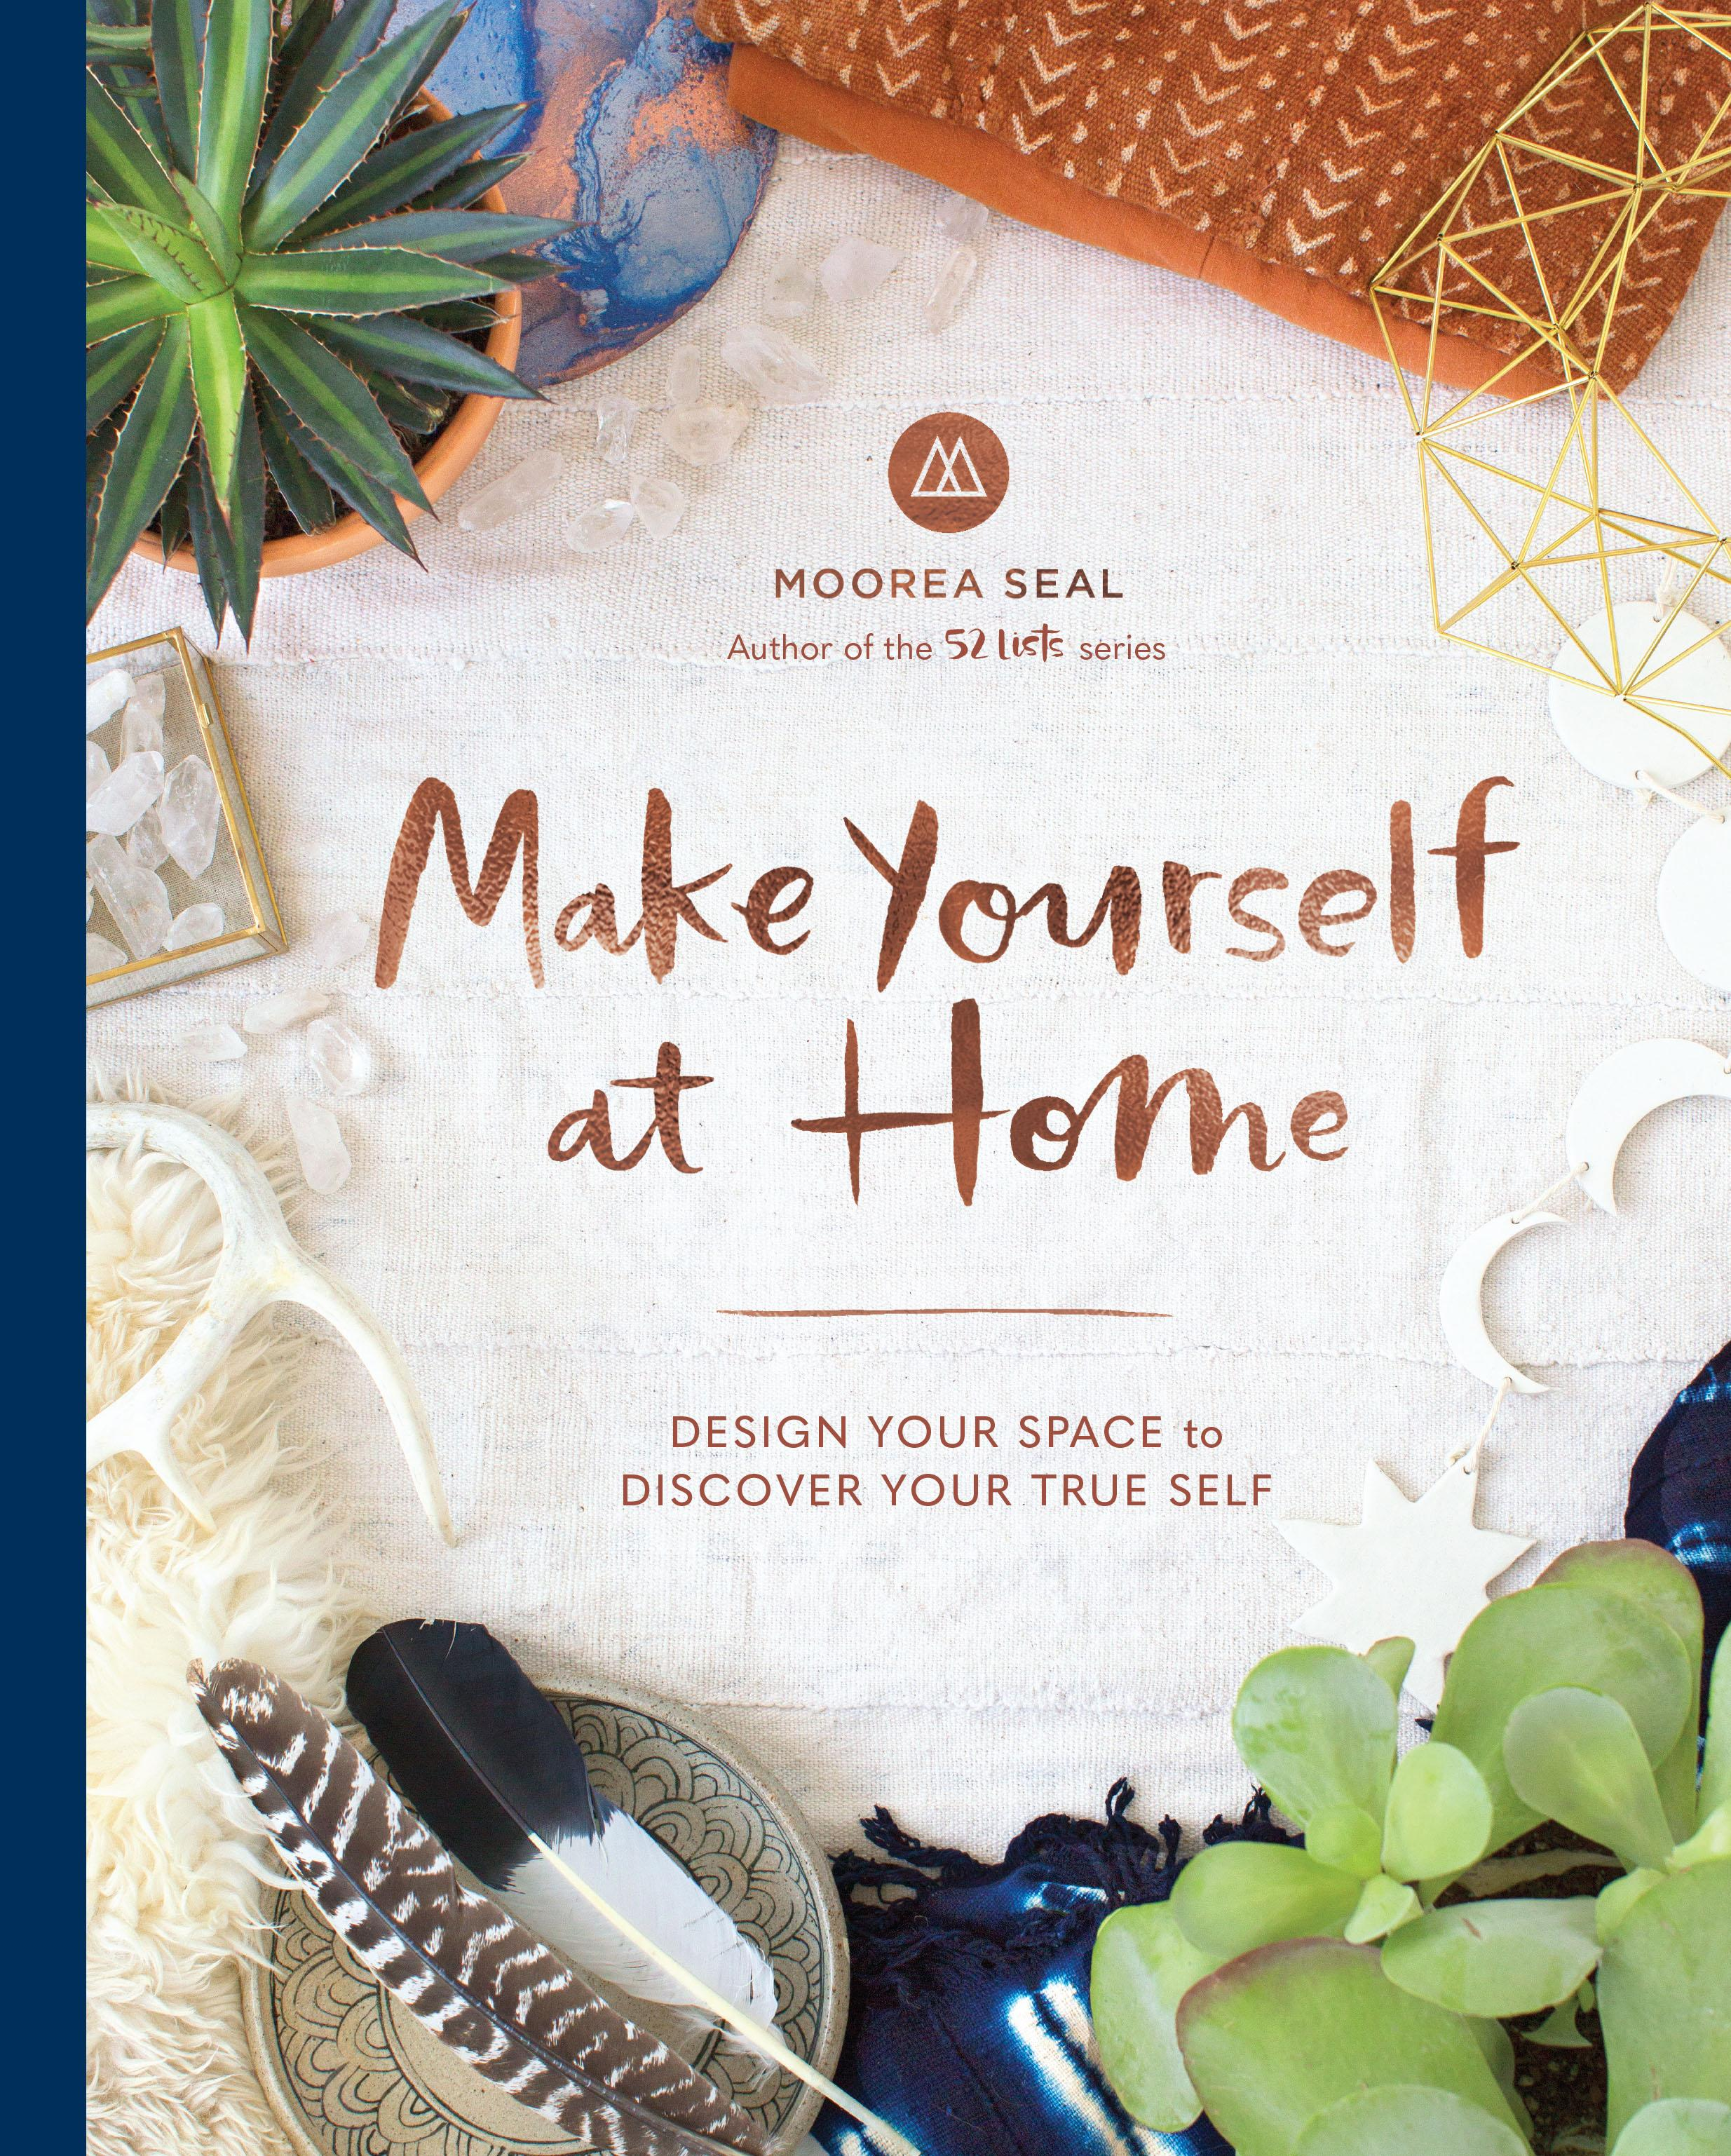 Make Yourself at Home by Moorea Seal, on sale now.  (Image courtesy of Sasquatch Books).